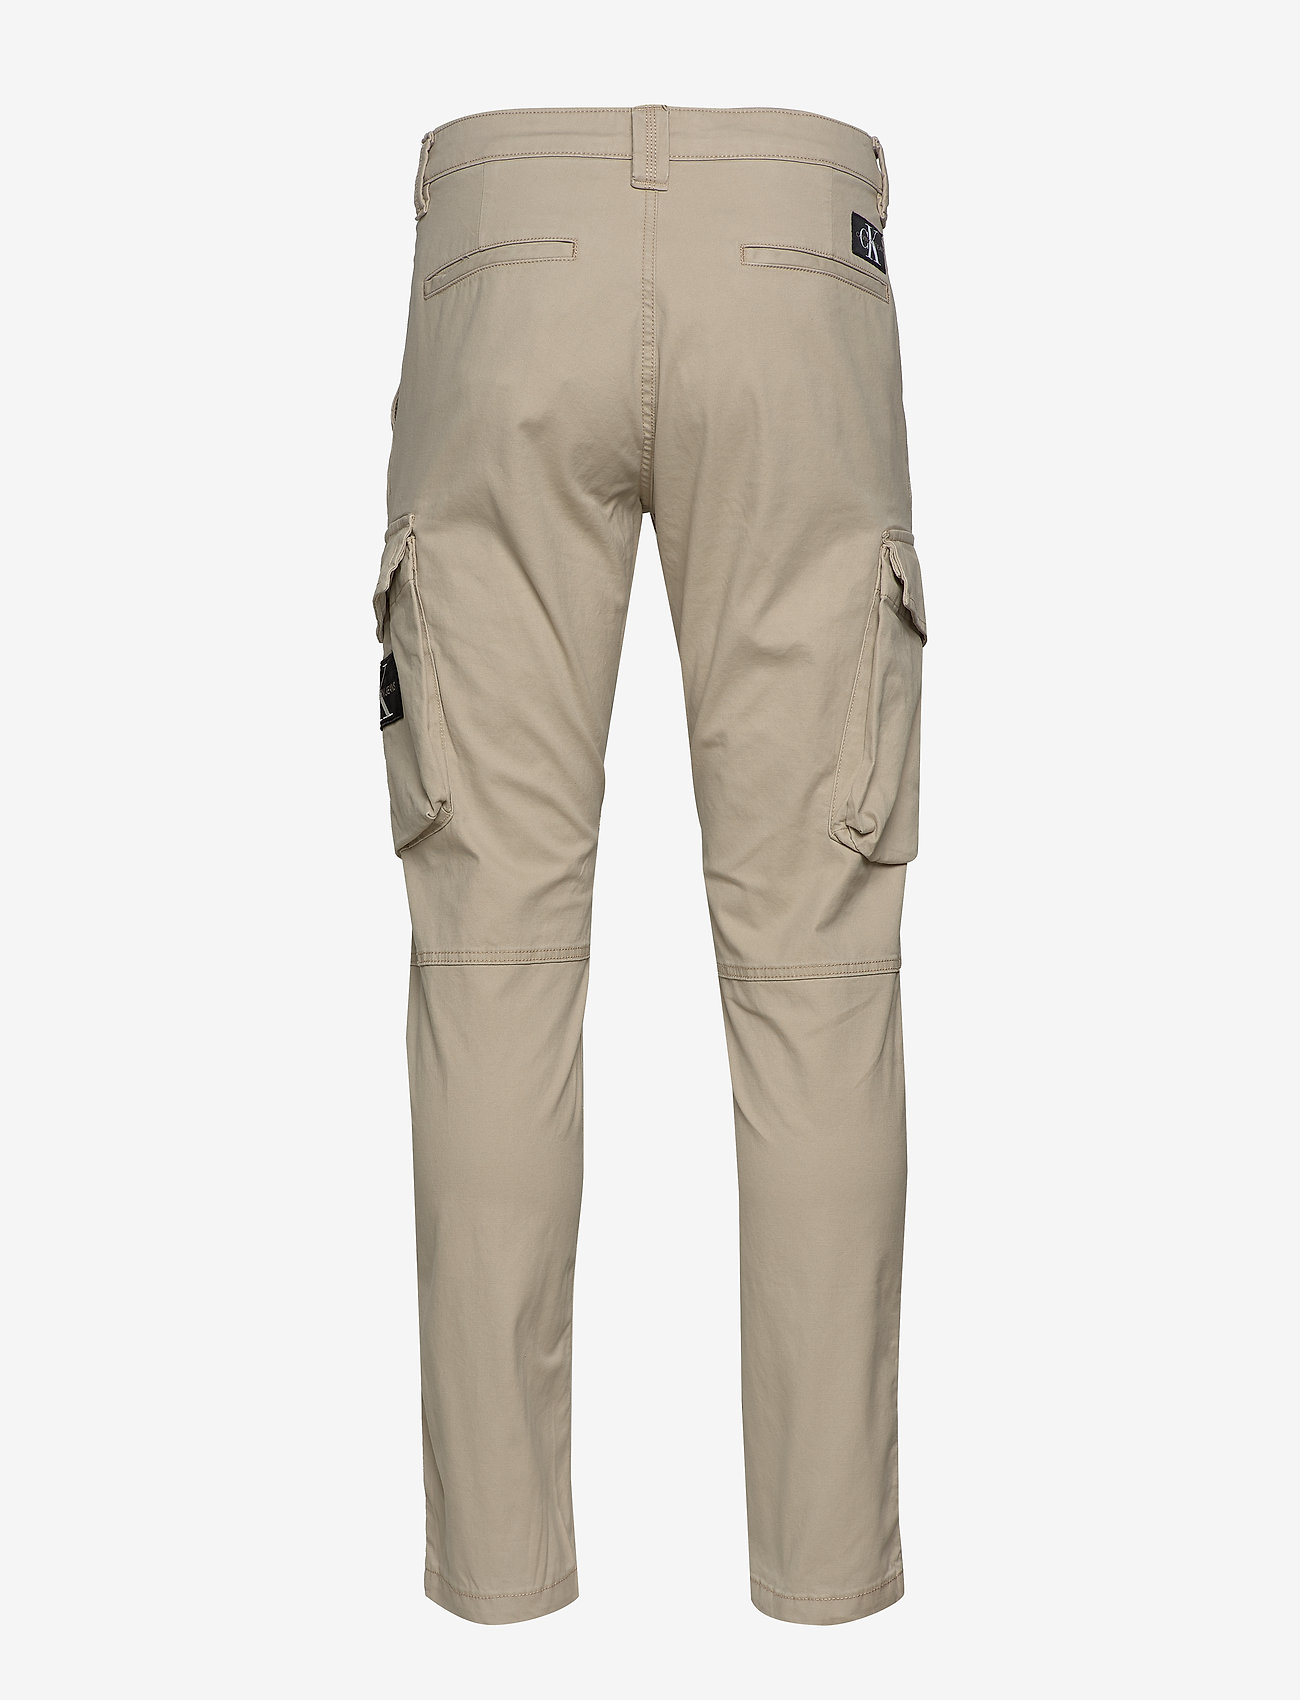 Calvin Klein Jeans - SKINNY WASHED CARGO PANT - cargo housut - plaza taupe - 1